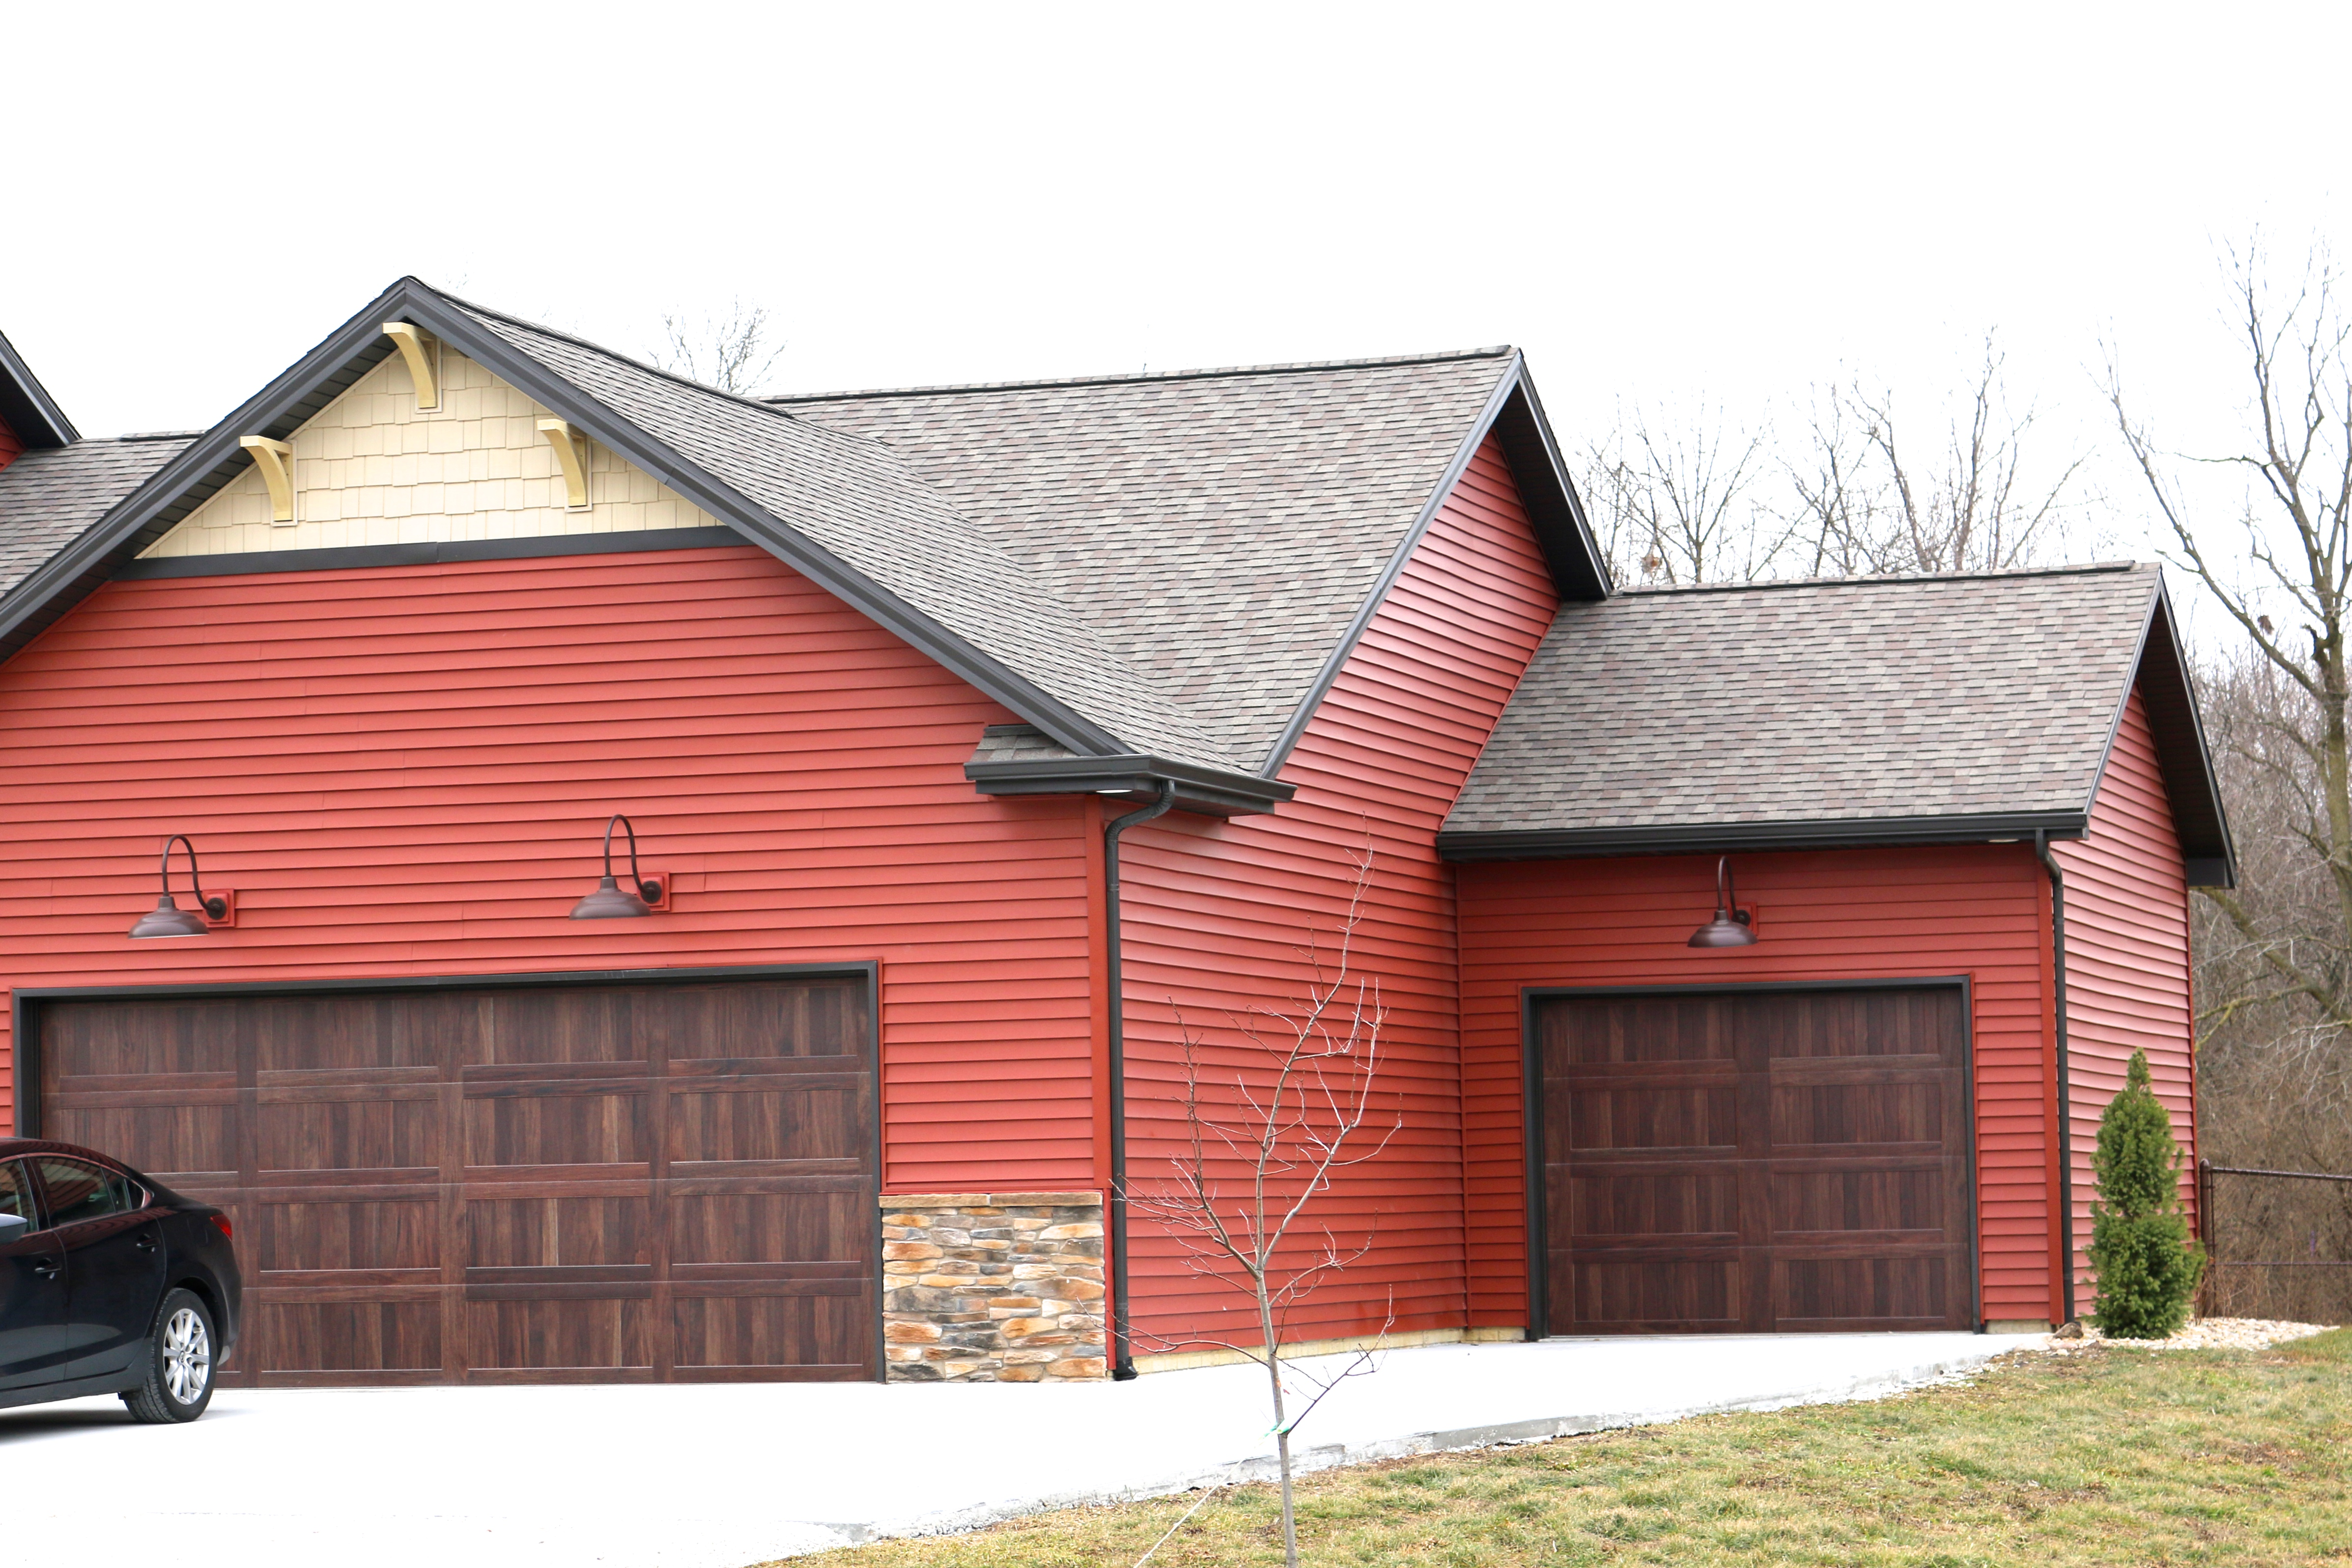 Mahoghany garage doors without windows  sc 1 st  Carlson Exteriors Inc. & Garage Doors u2013 Carlson Exteriors Inc.